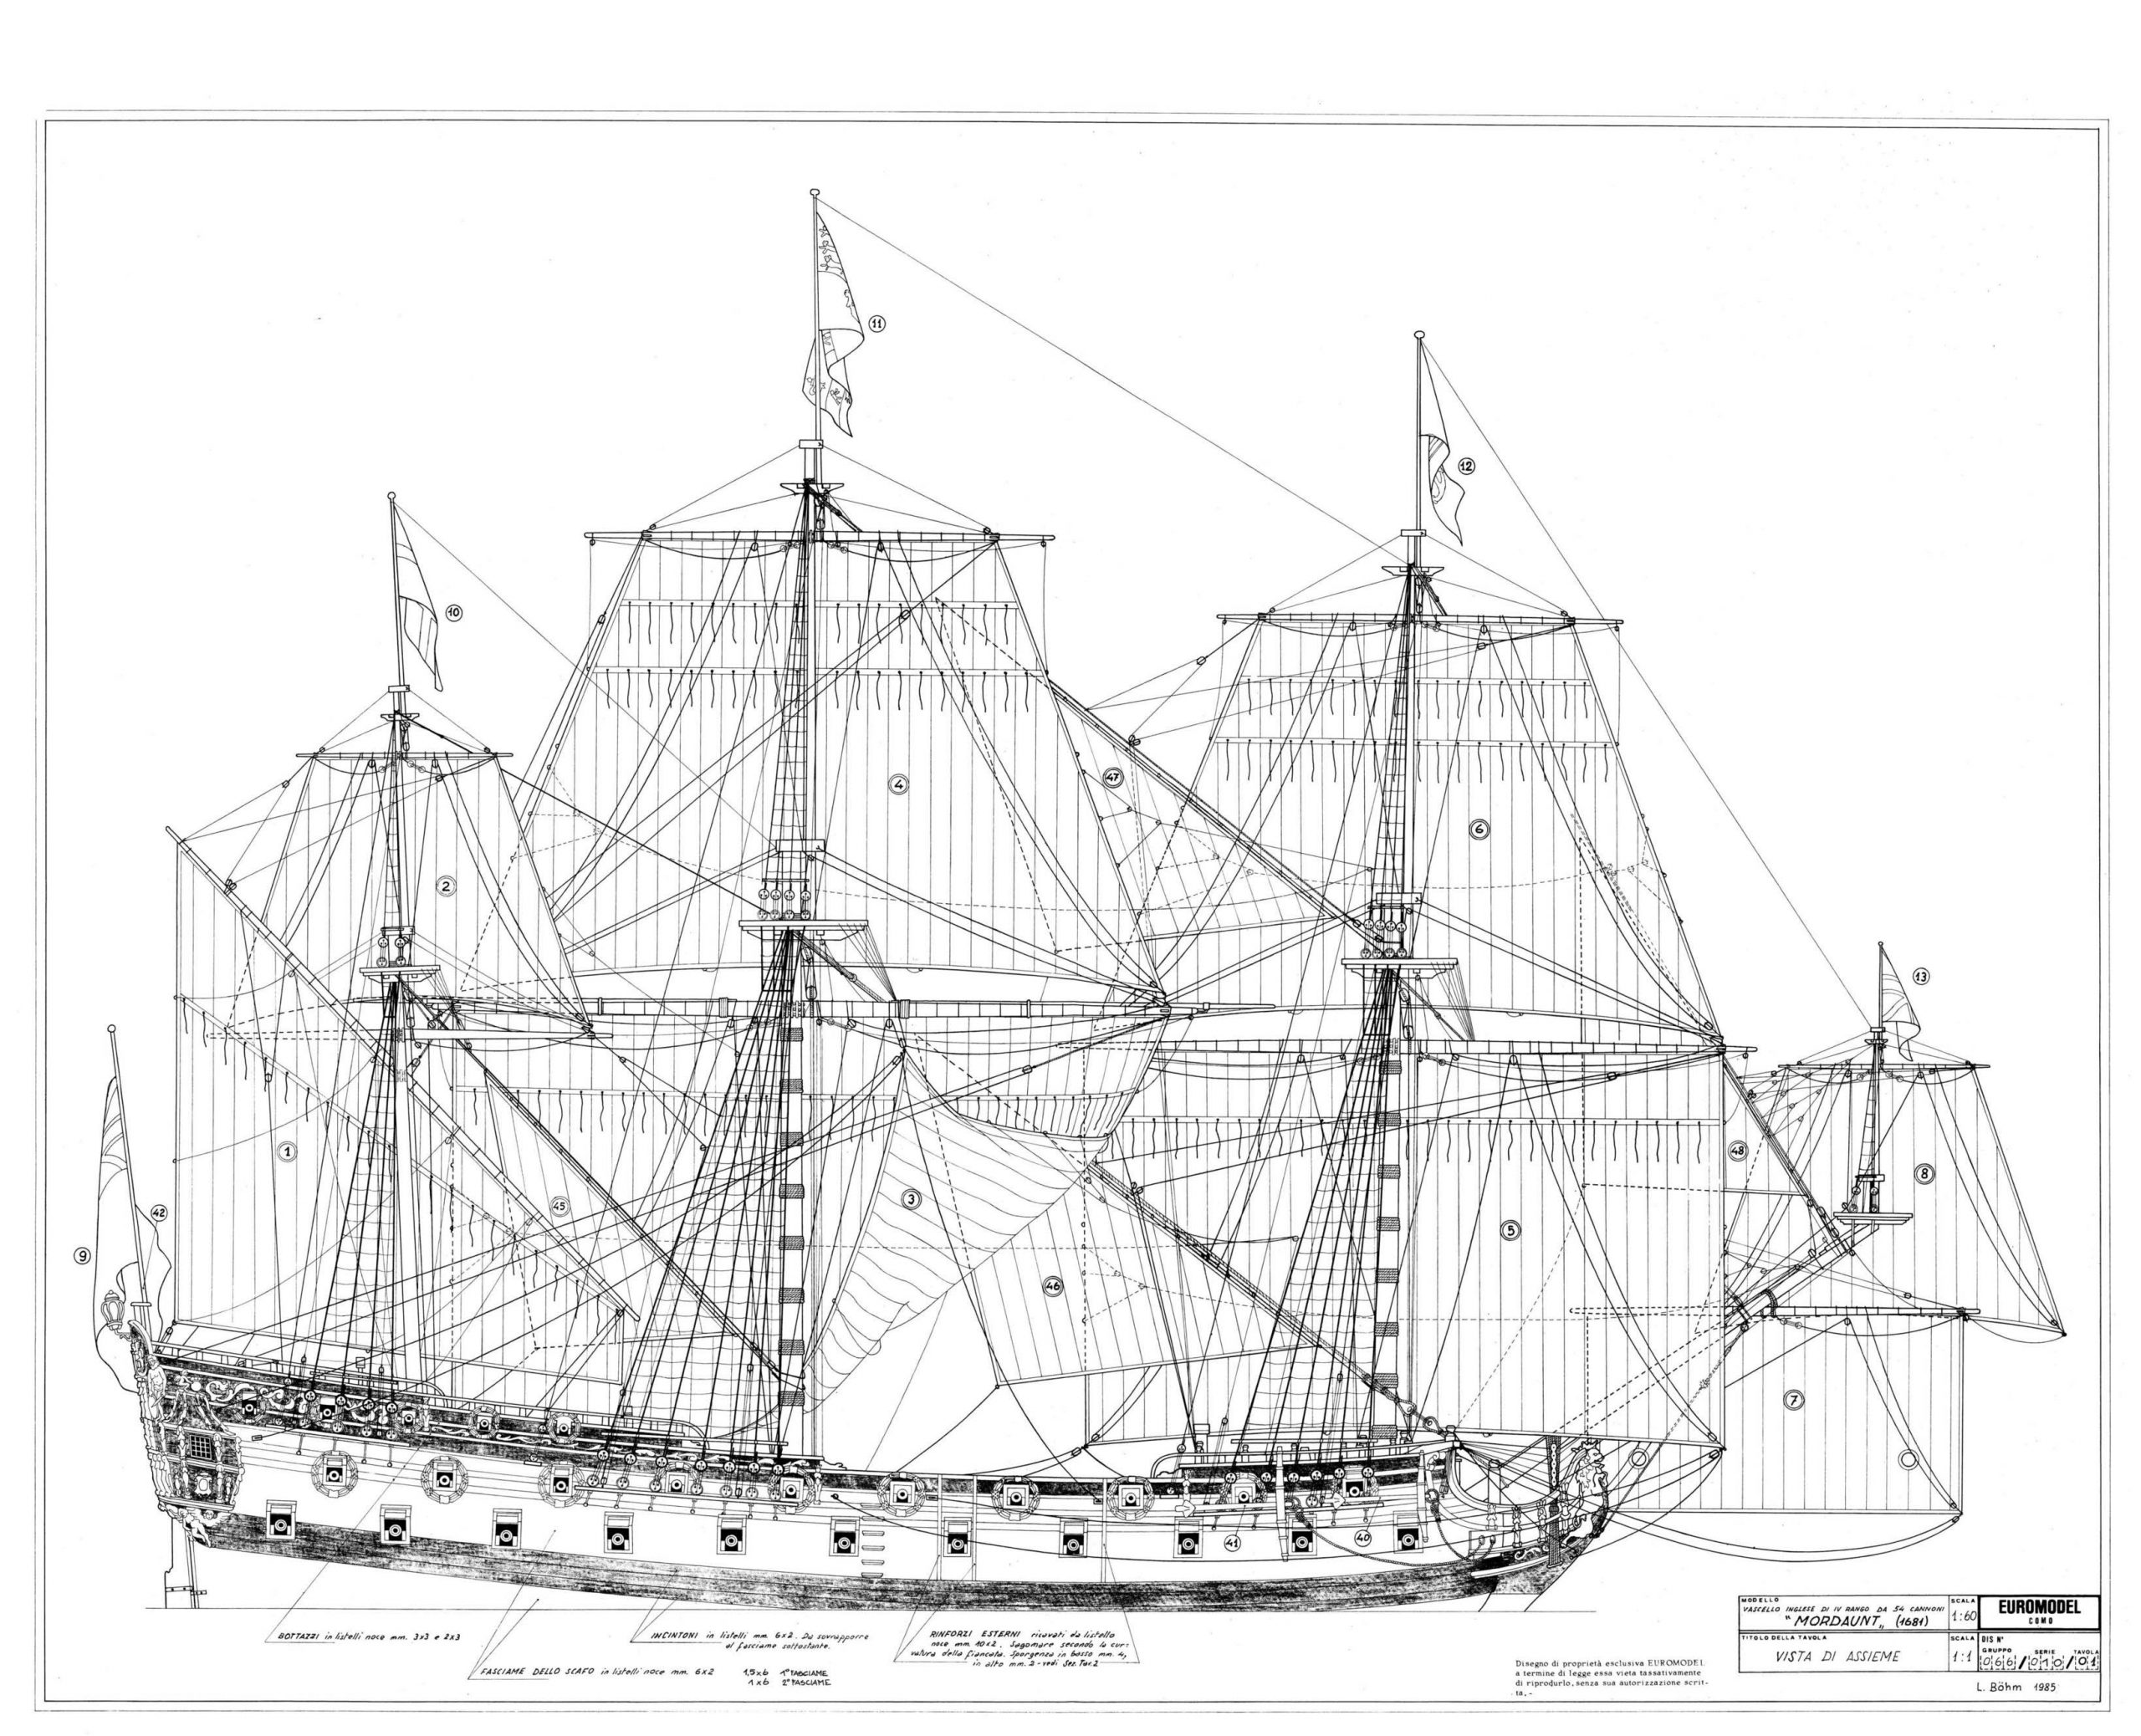 Plan of a 4th rate ship of the line